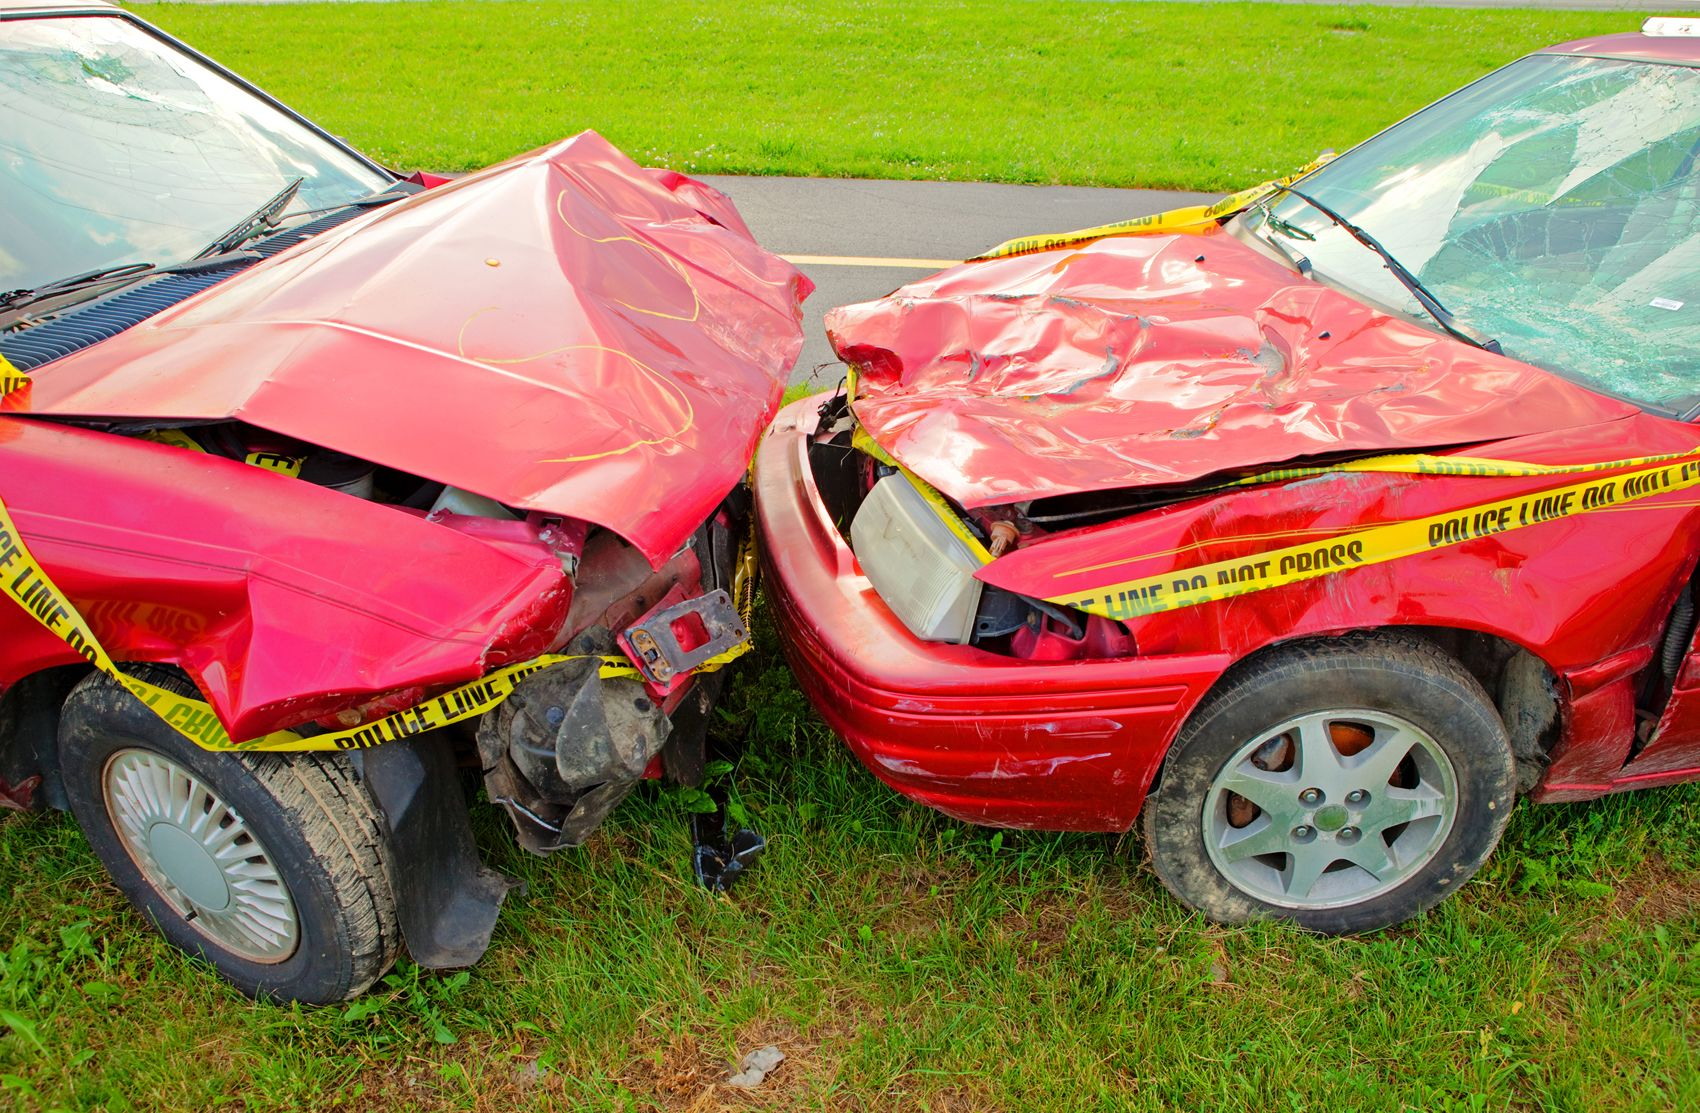 A head-on auto accident with two red cars